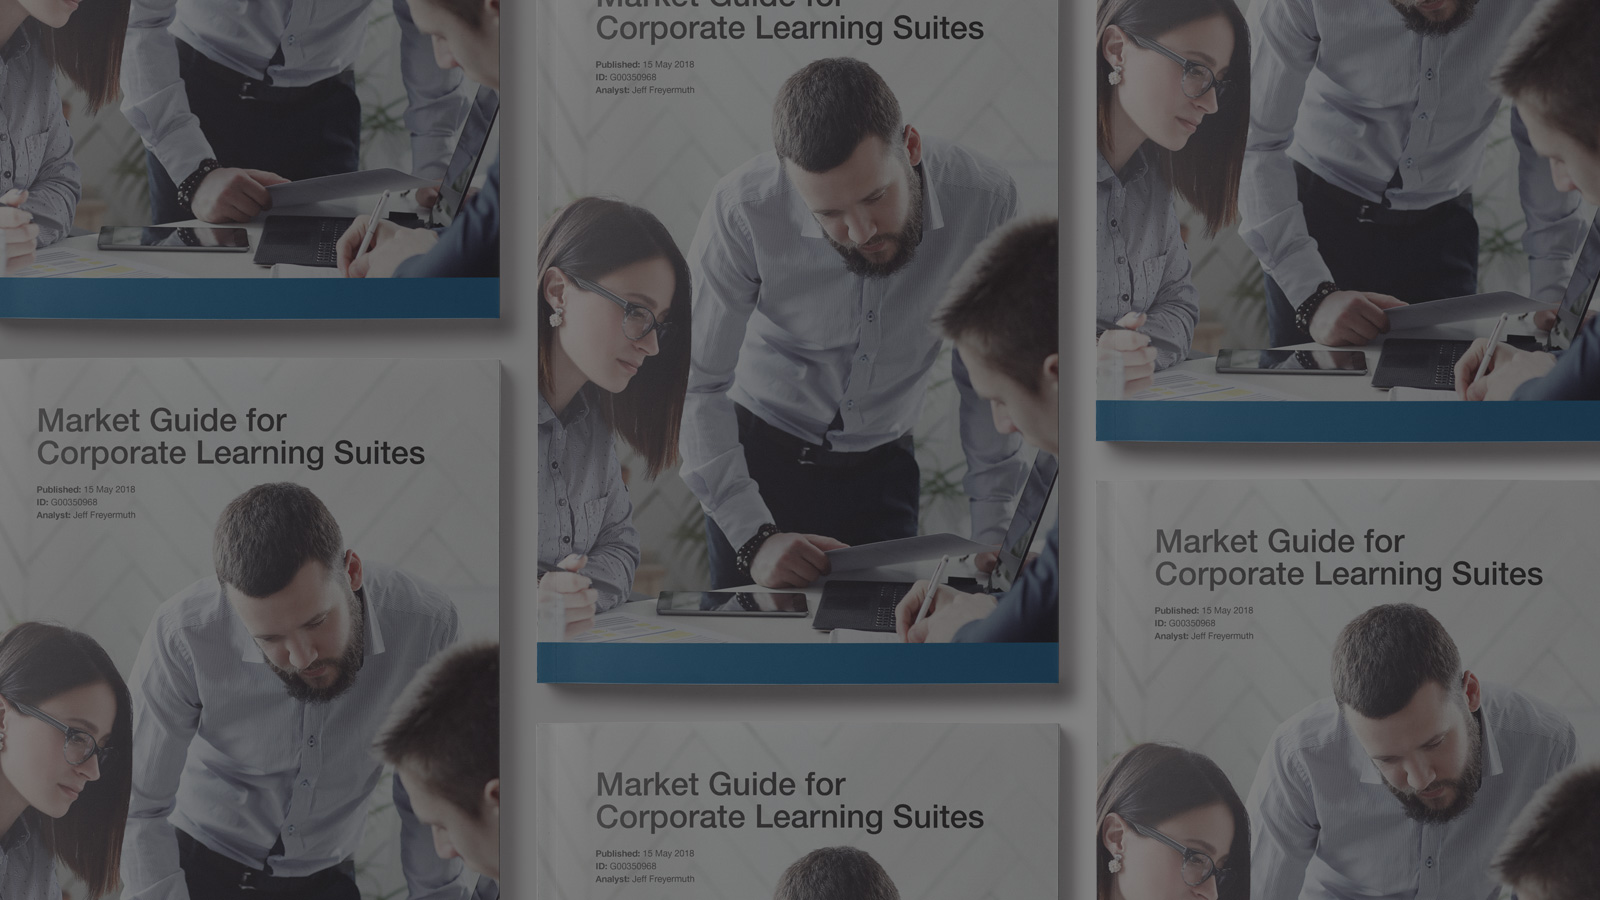 market guide for corporate learning suites